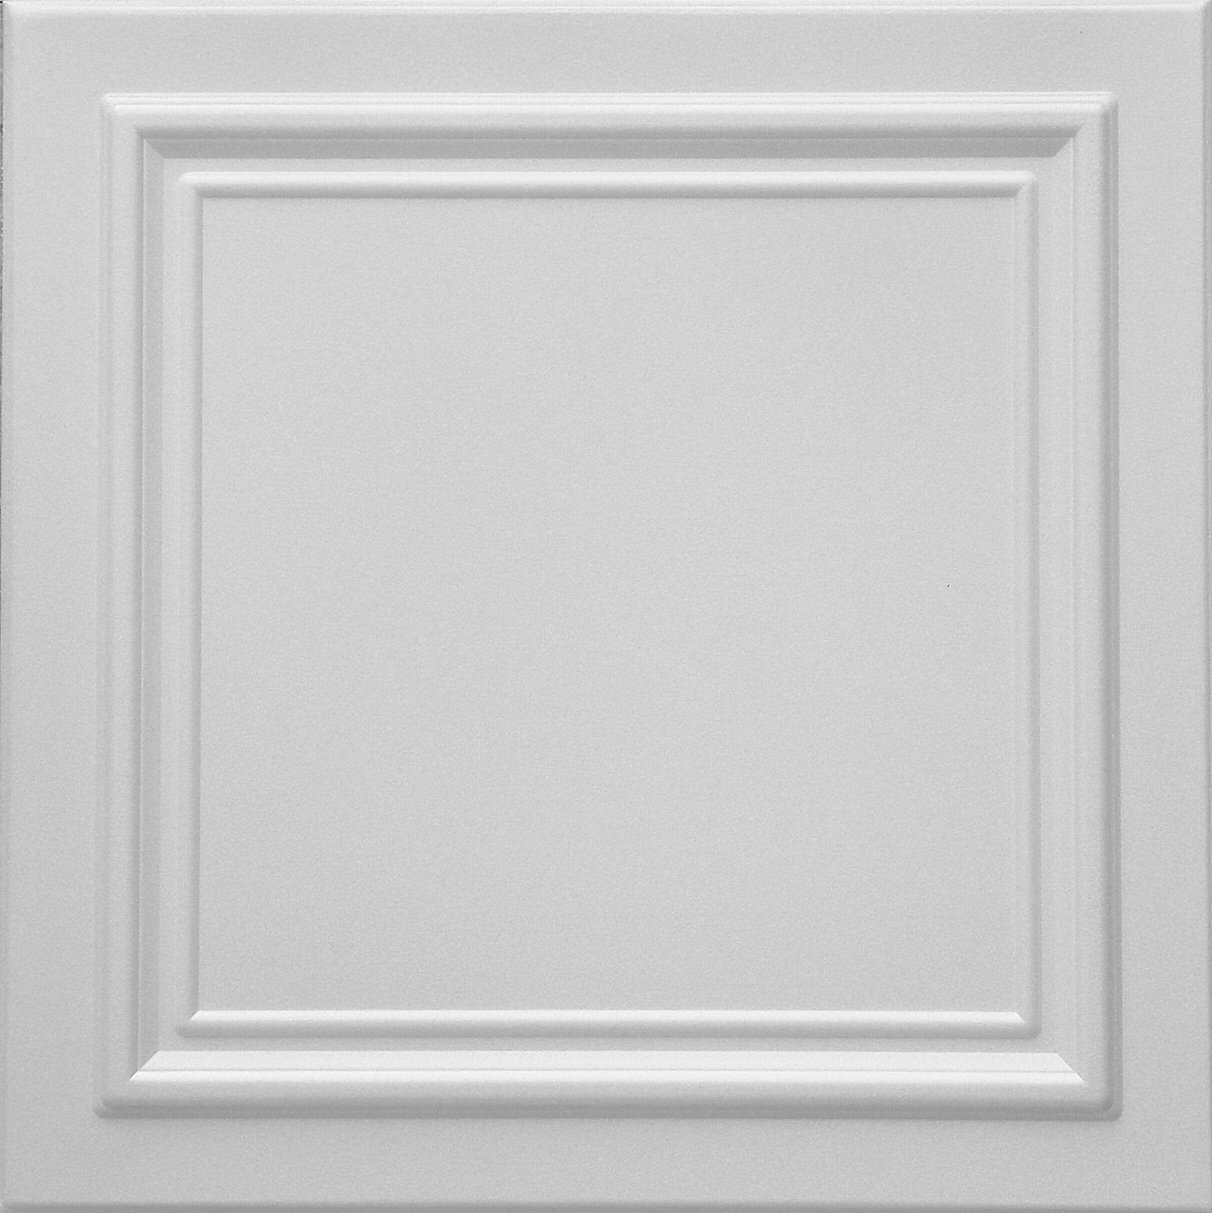 RM-24 Polystyrene (Styrofoam) White ceiling tile to cover popcorn (Pack of 48 tiles). Easy paintable. Easy DIY glue up application on any flat surface or popcorn ceiling. Decorative ceiling panels.